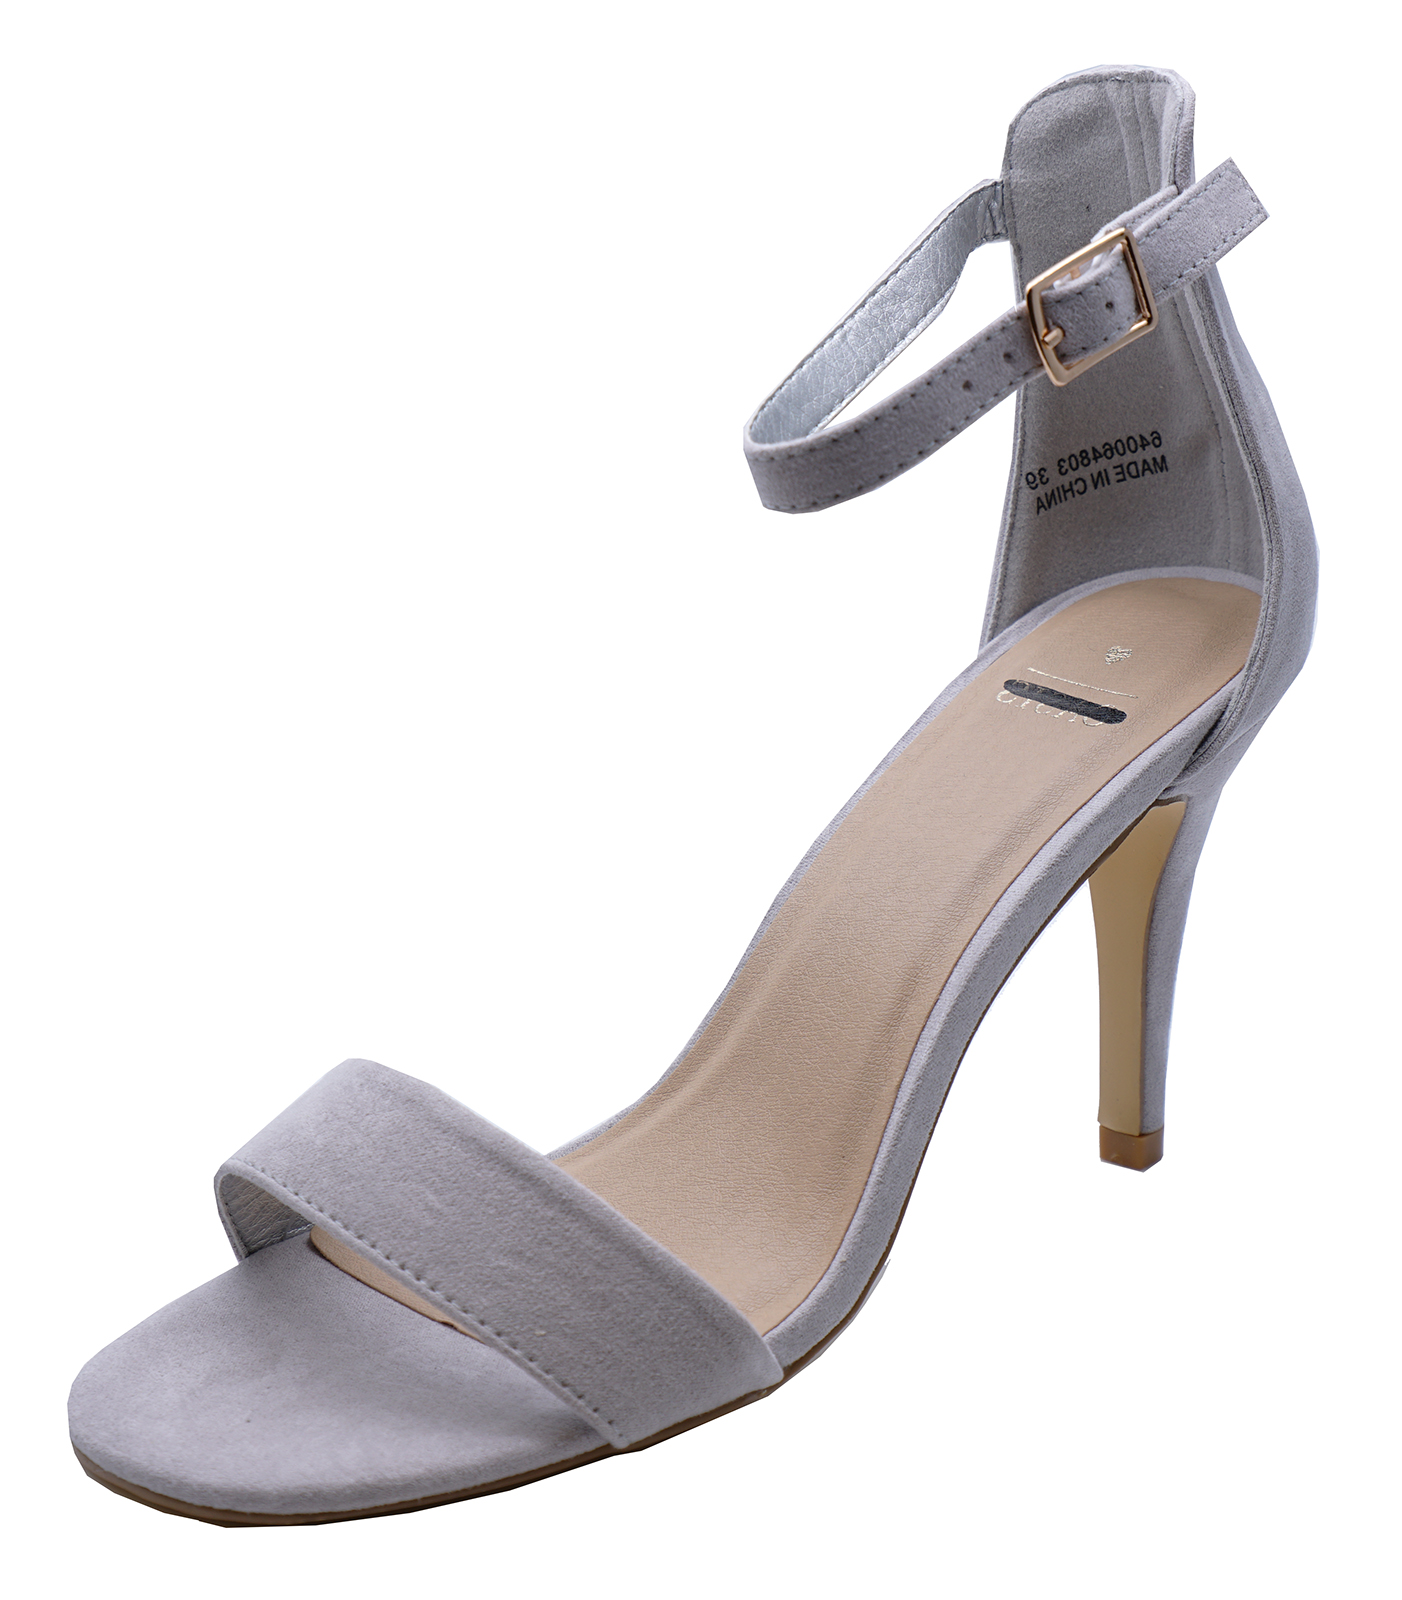 ae1401bb6bd Sentinel WOMENS GREY OPEN-TOE STRAPPY HIGH-HEEL WEDDING PARTY SANDALS SHOES  SIZES 3-